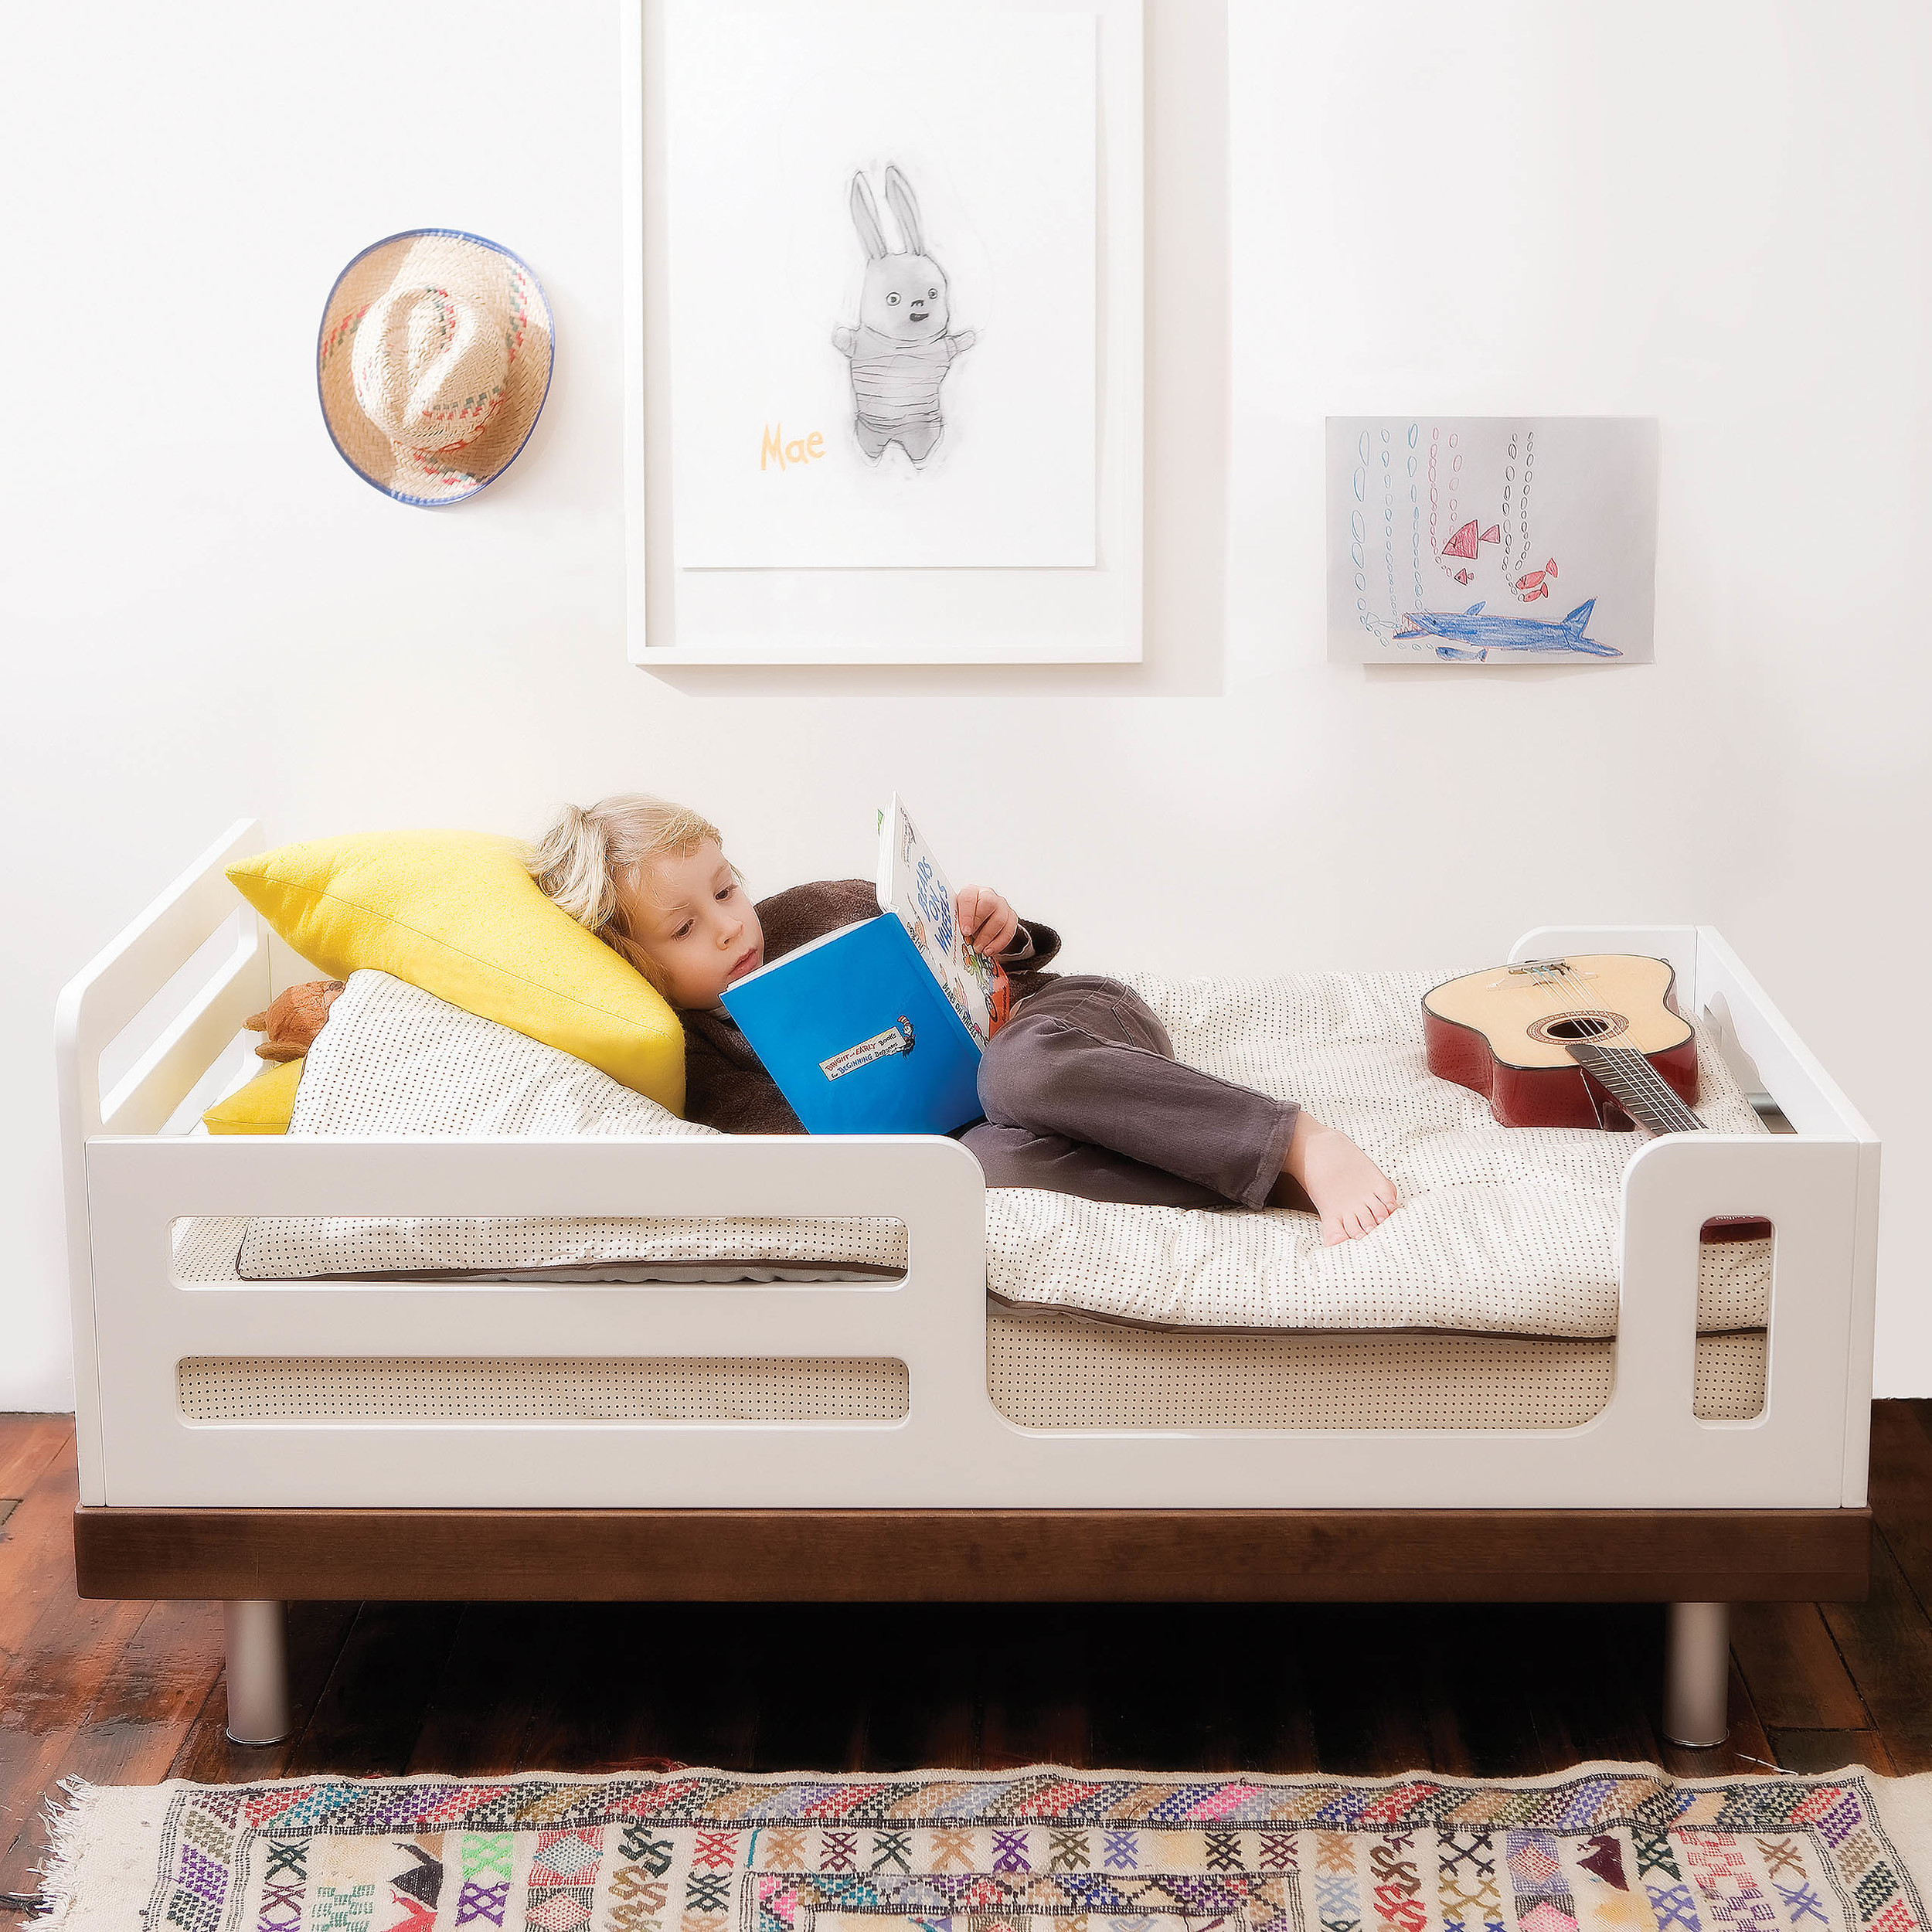 Classic_Toddler_roomsetting_walnut_highres.jpg